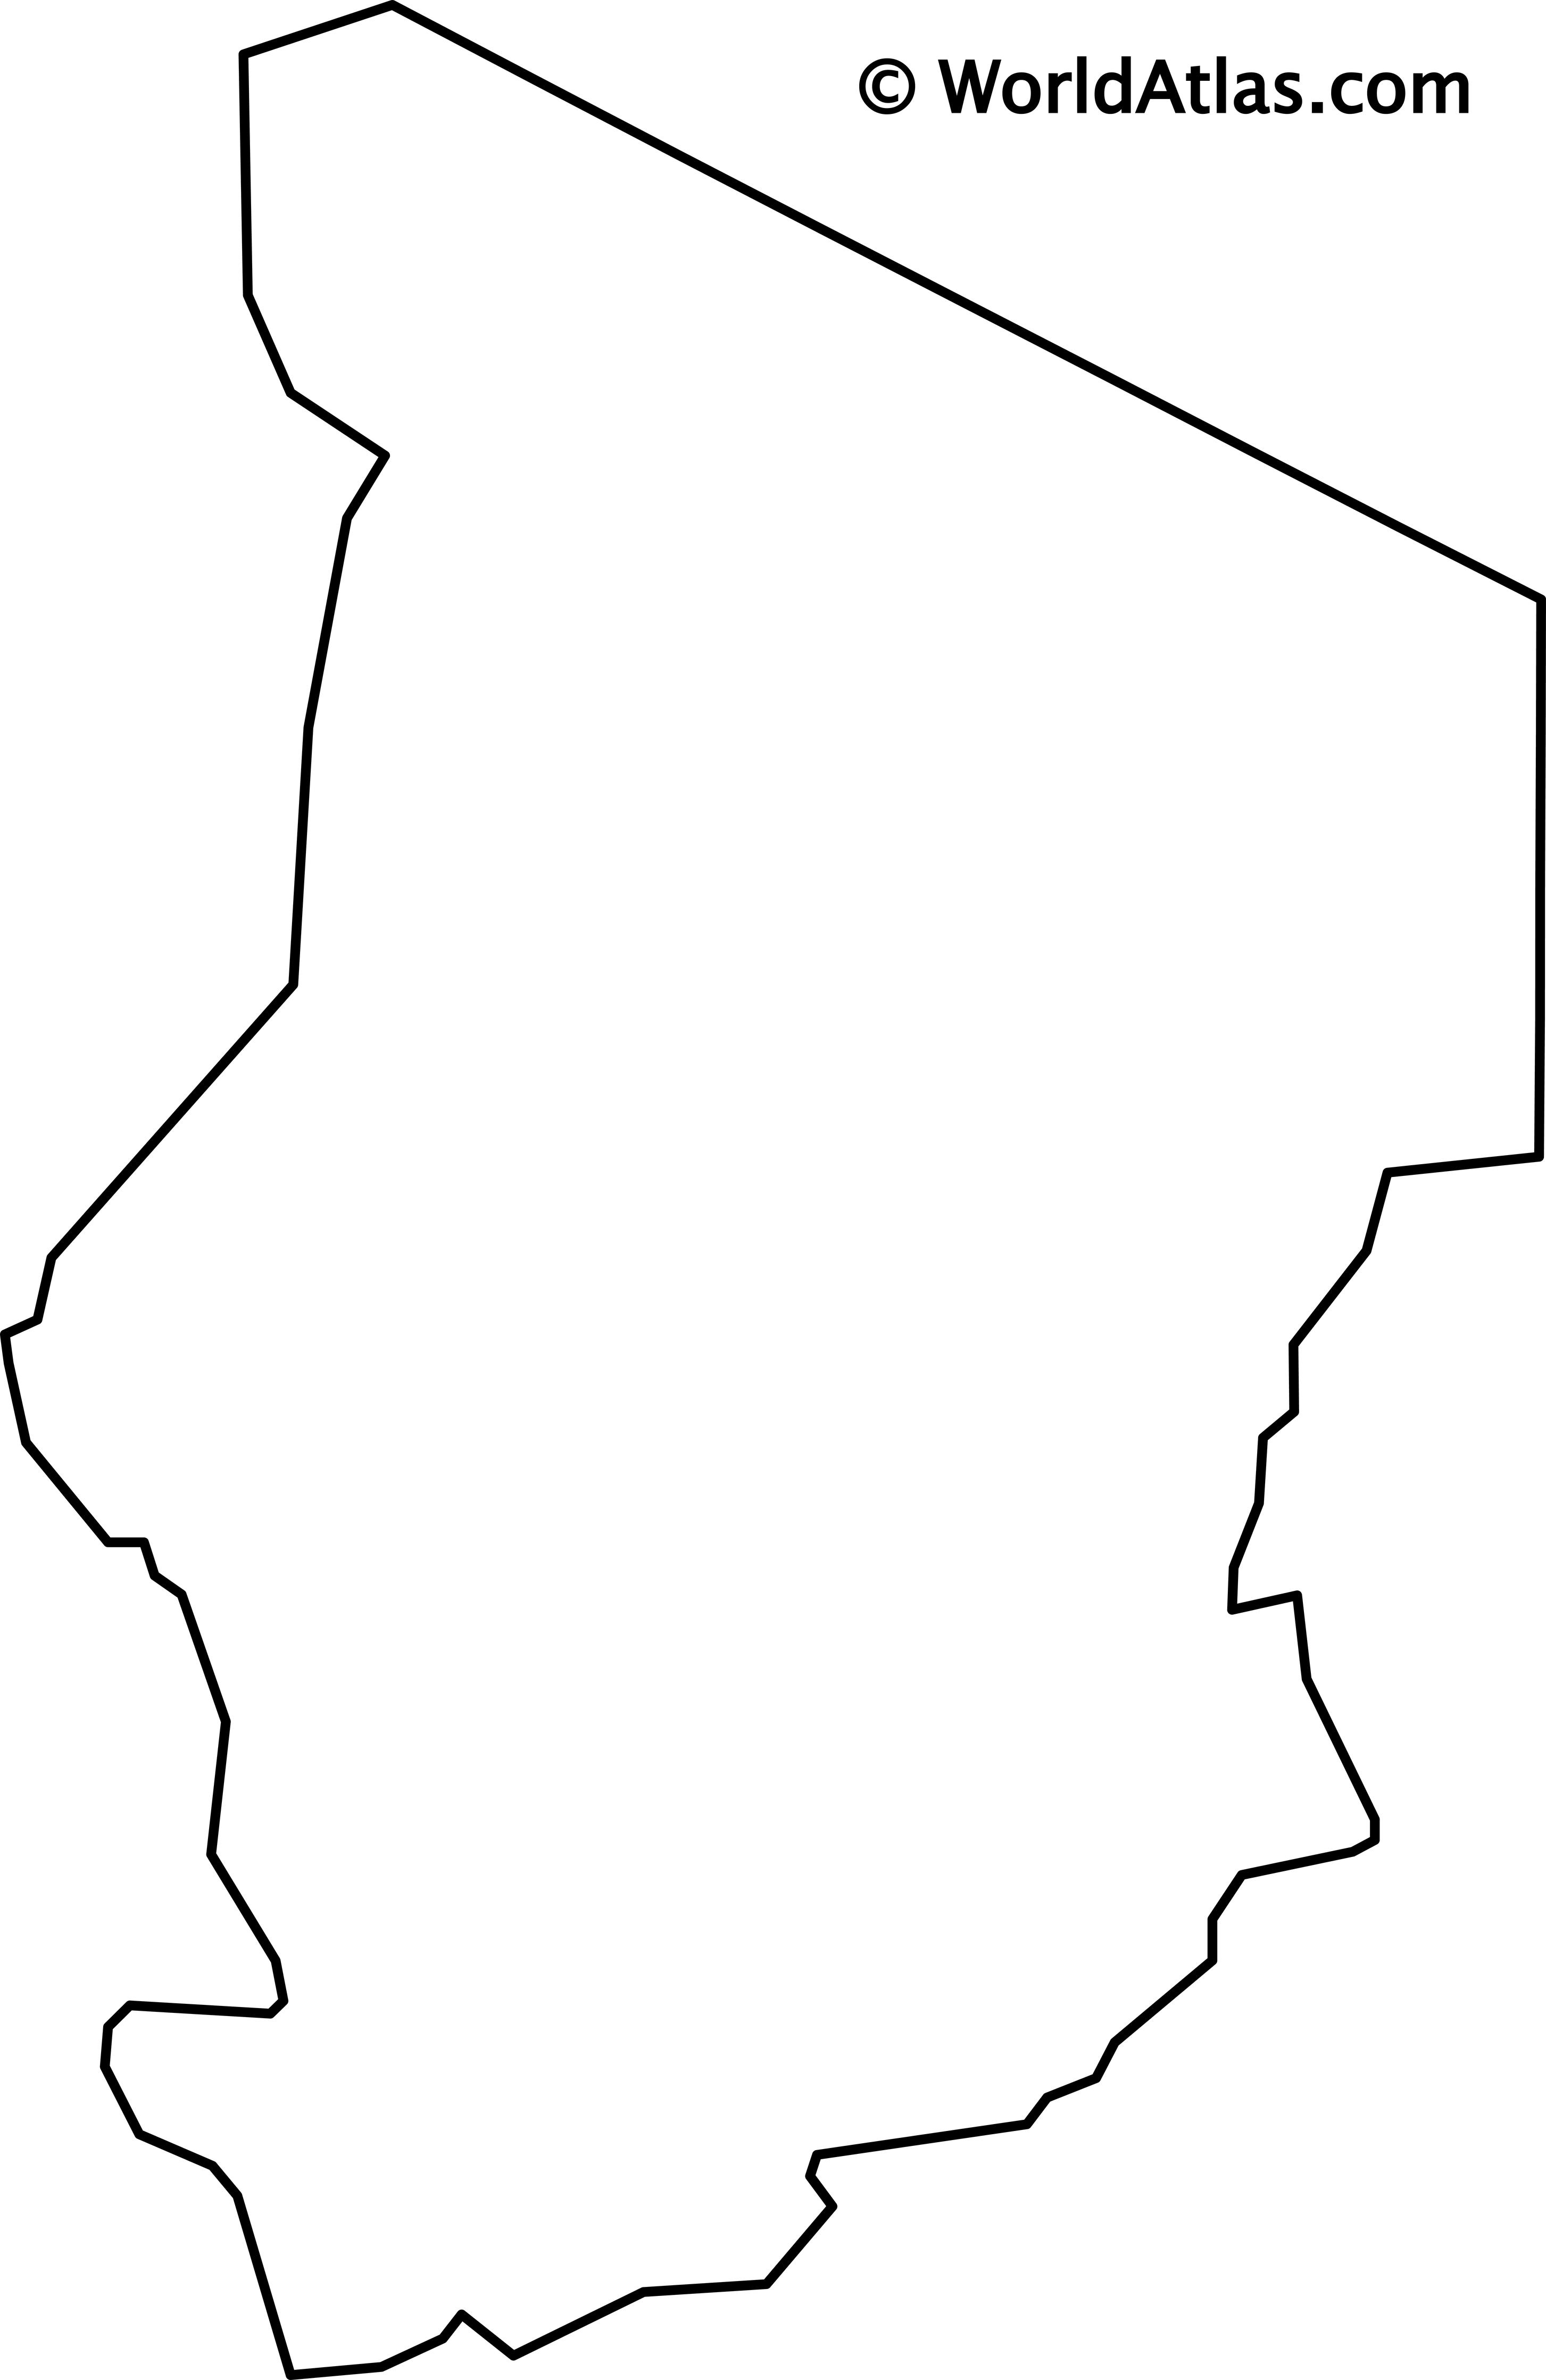 Blank Outline Map of Chad